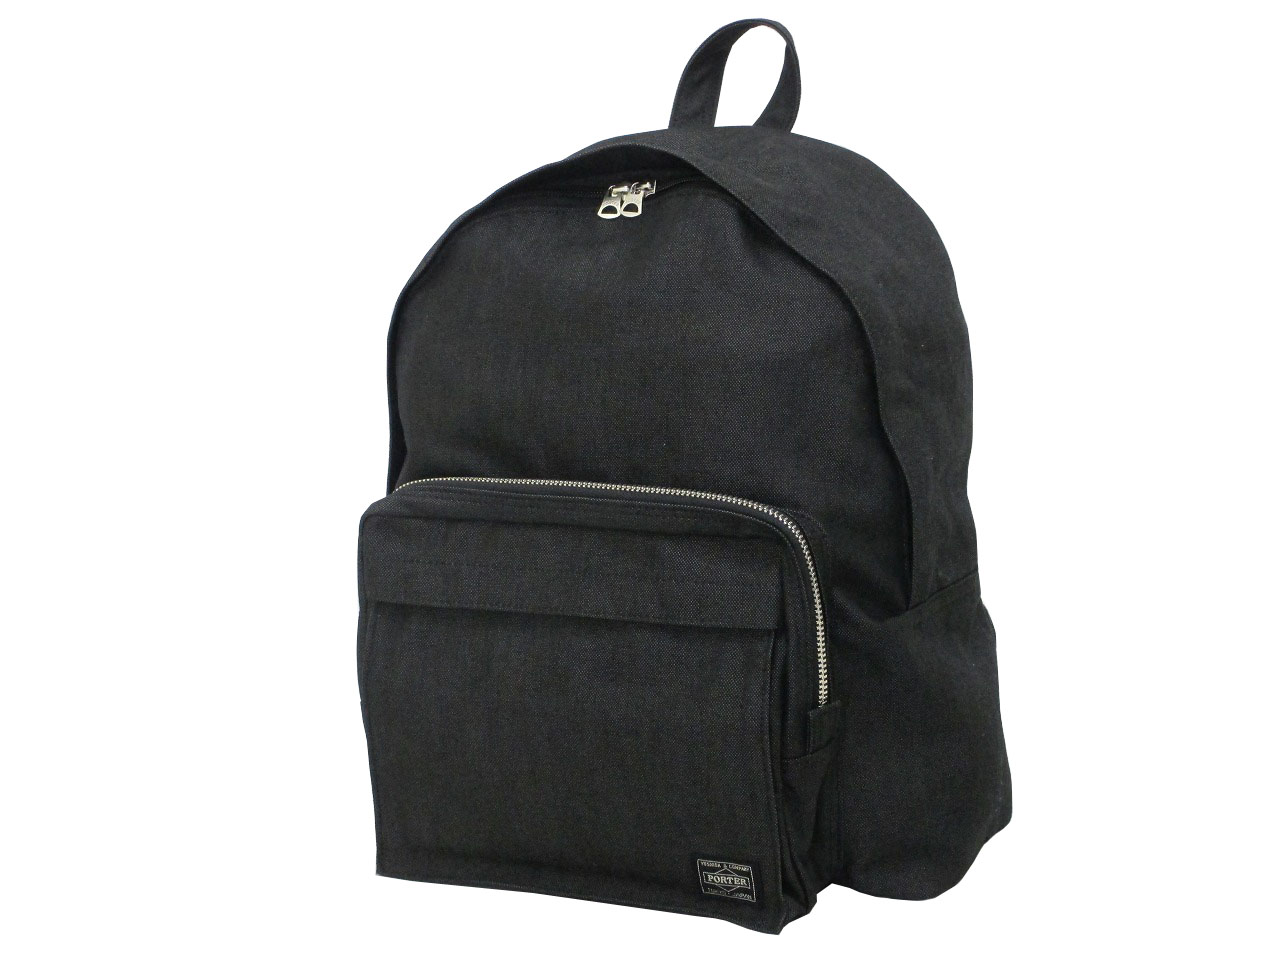 (Only in JAPAN.) 吉田カバン PORTER SMOKY ポーター スモーキー リュック Dパック デイパック 38cm 592-07626 (This product is not for overseas customer.)